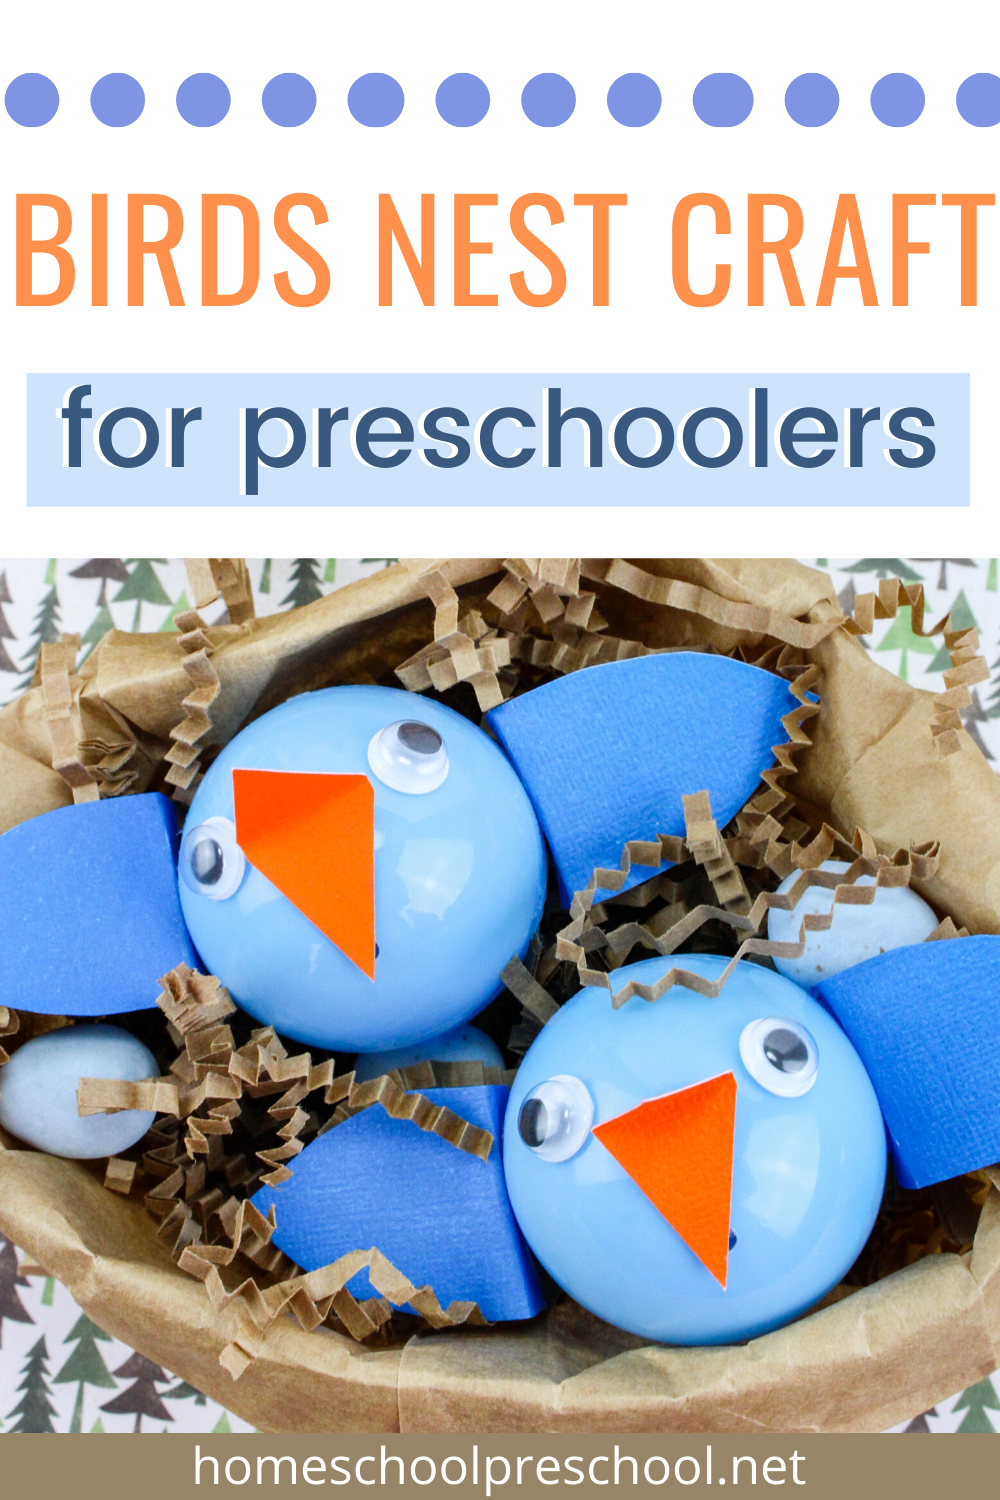 20+ Bird nest craft preschool ideas